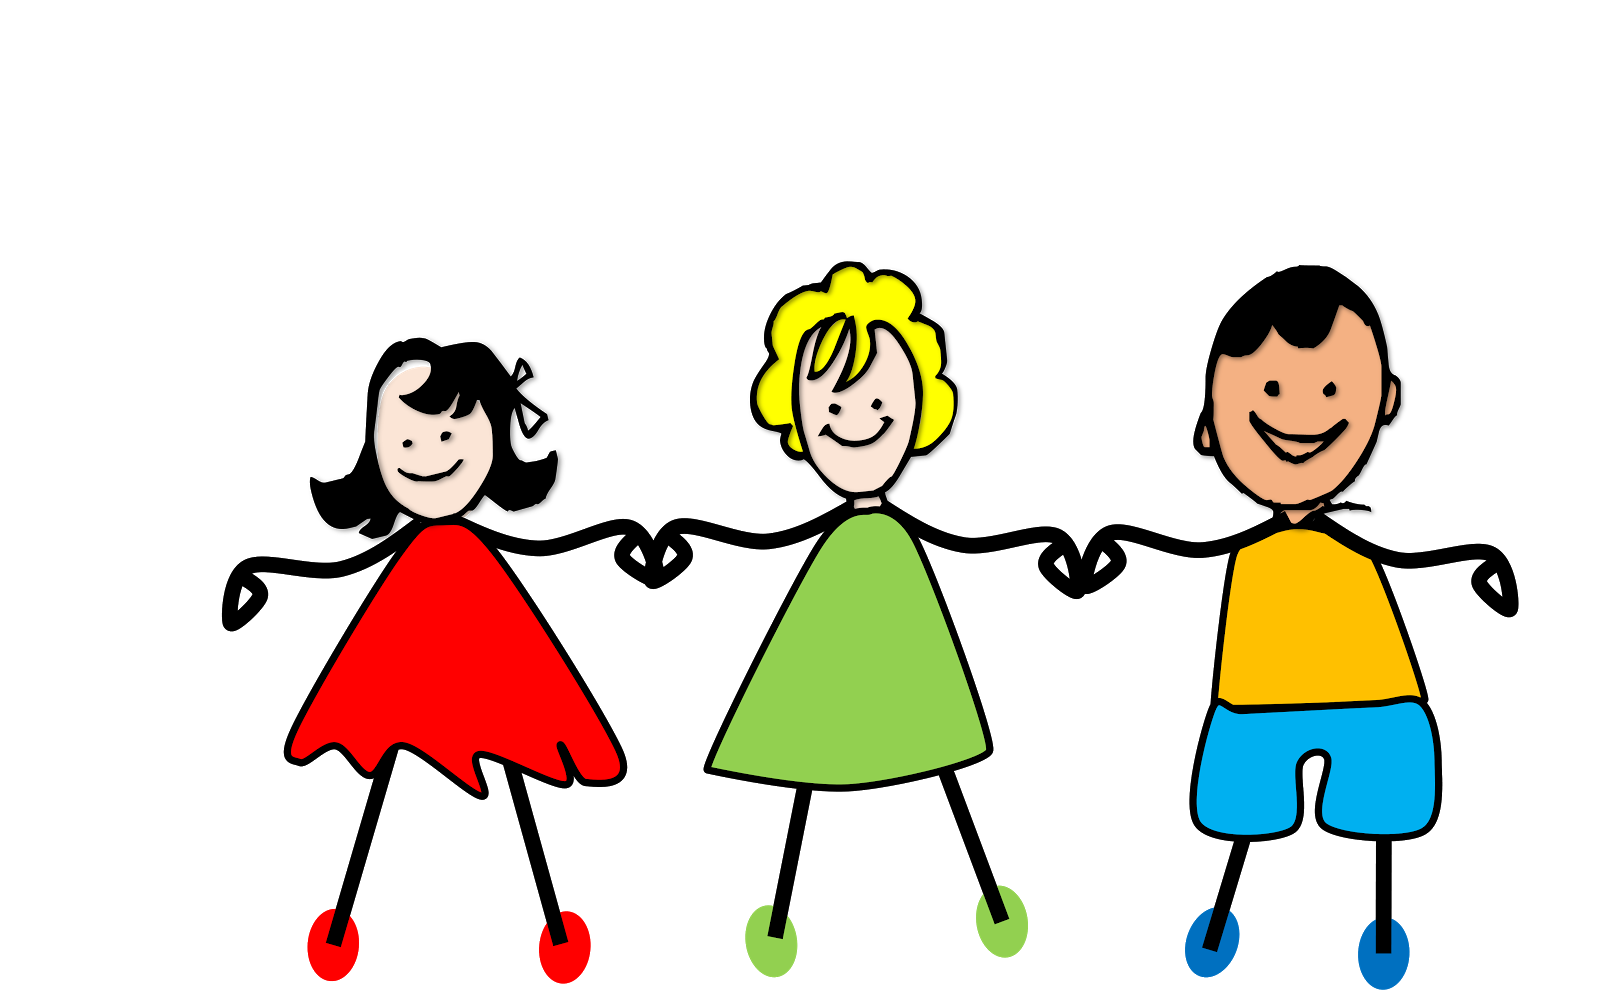 Kids Holding Hands Clip Art.